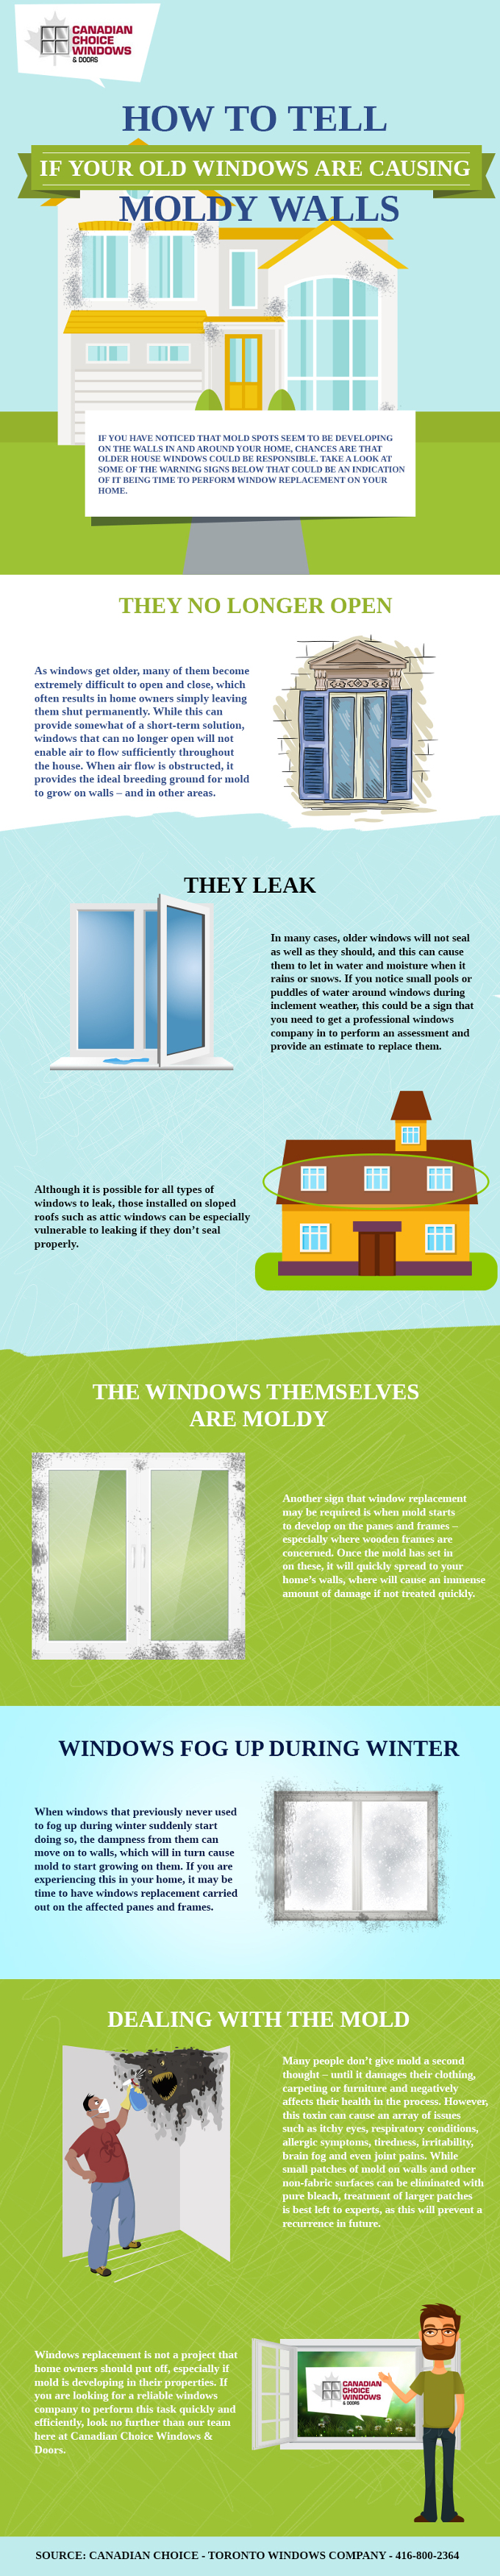 How to Tell if Your Old Windows are Causing Moldy Walls